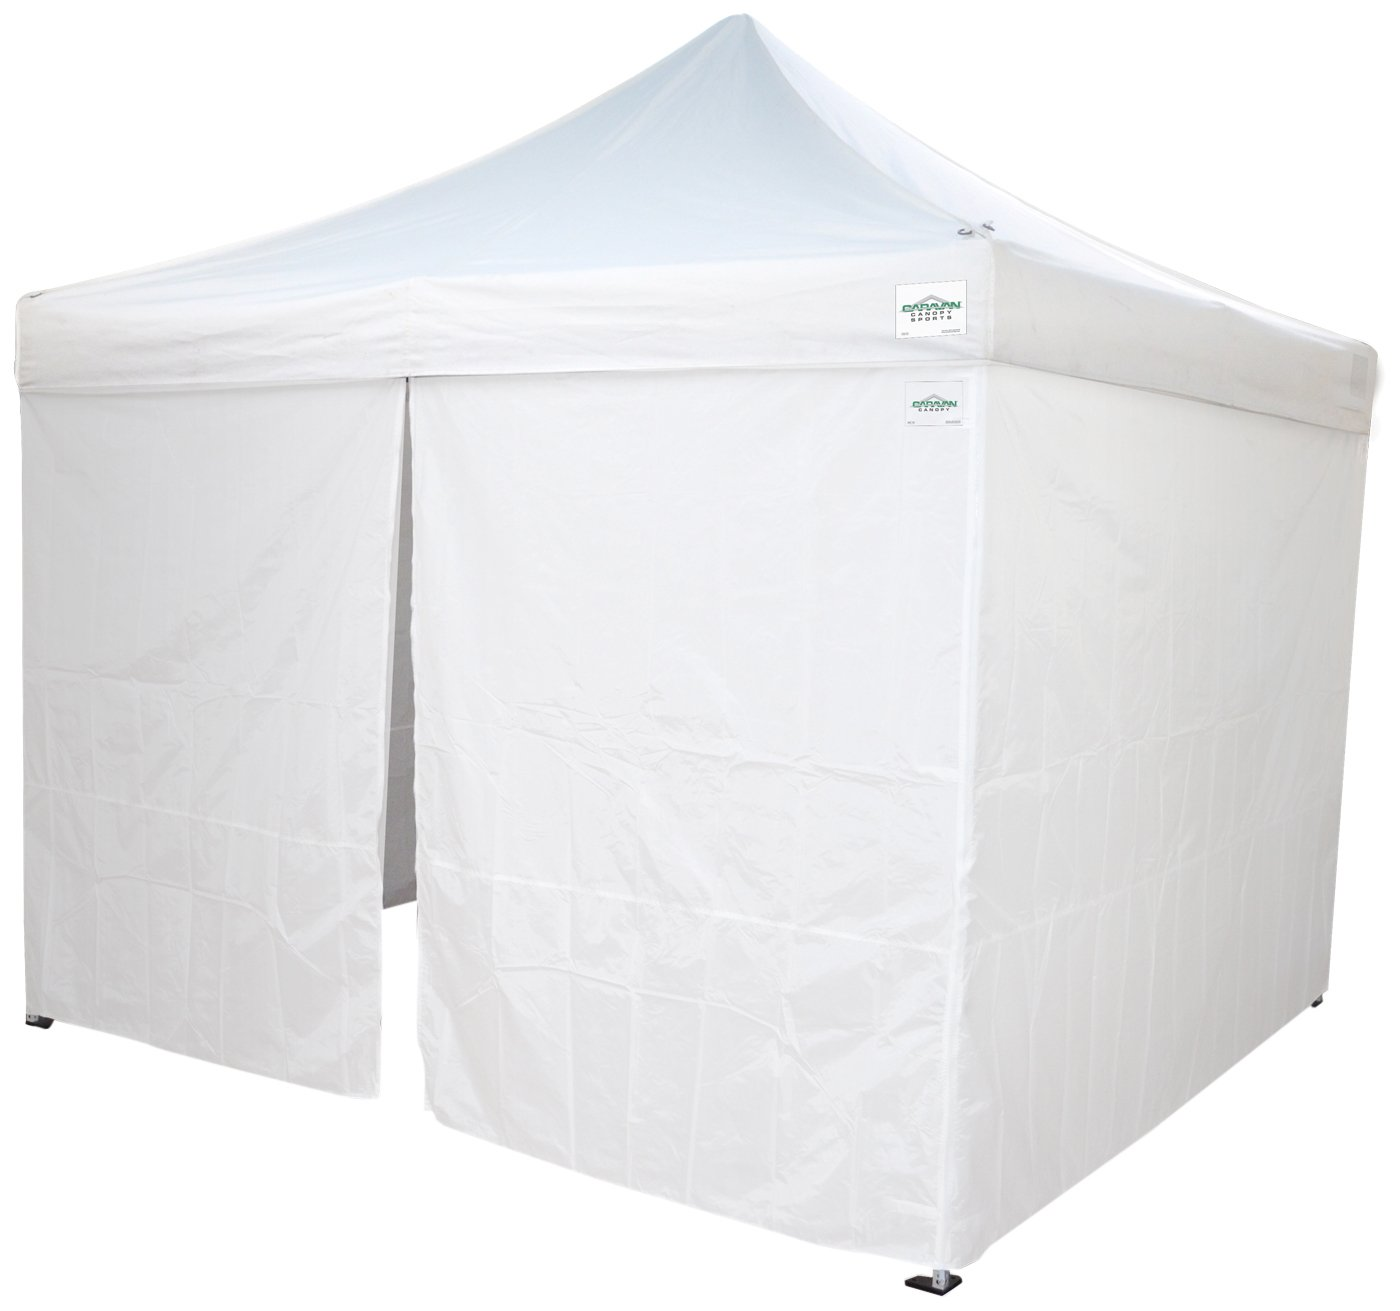 Caravan Canopy Sport V-Series Pro/M Series Sidewall Kit 10-Foot x 10-Foot Caravan Global 11007912014